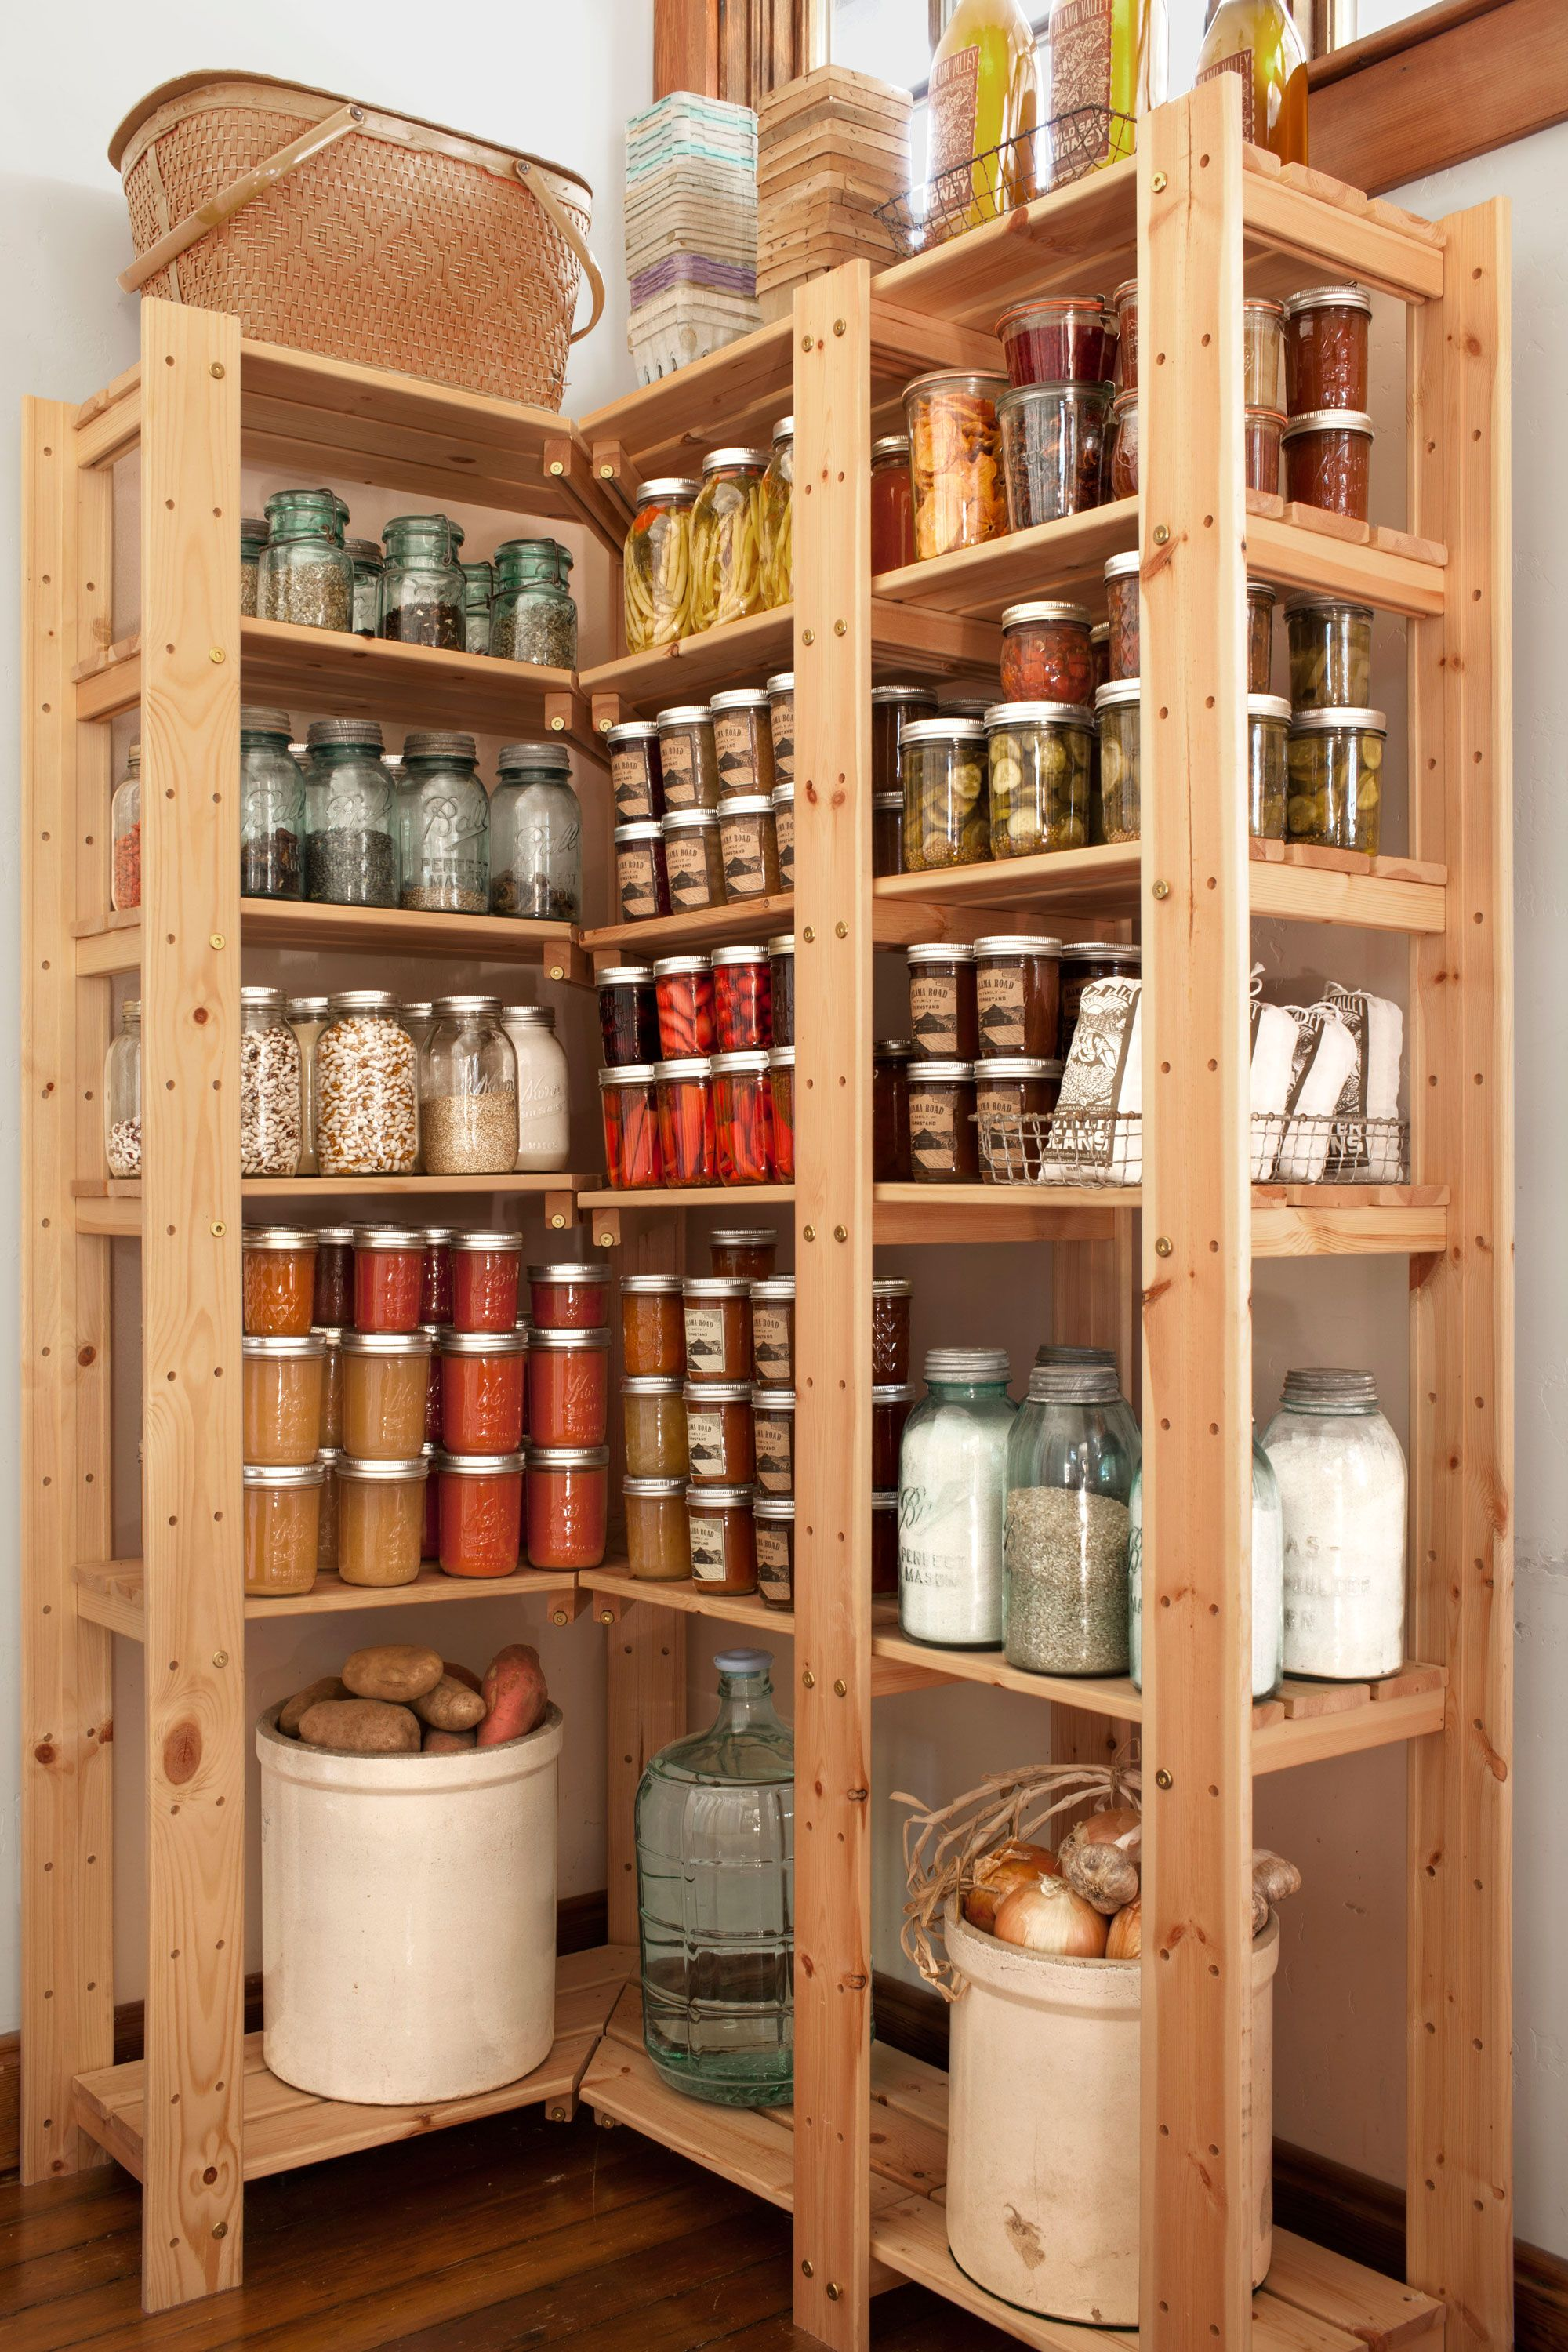 Closet Pantry 20 Kitchen Pantry Organization Ideas How To Organize A Pantry